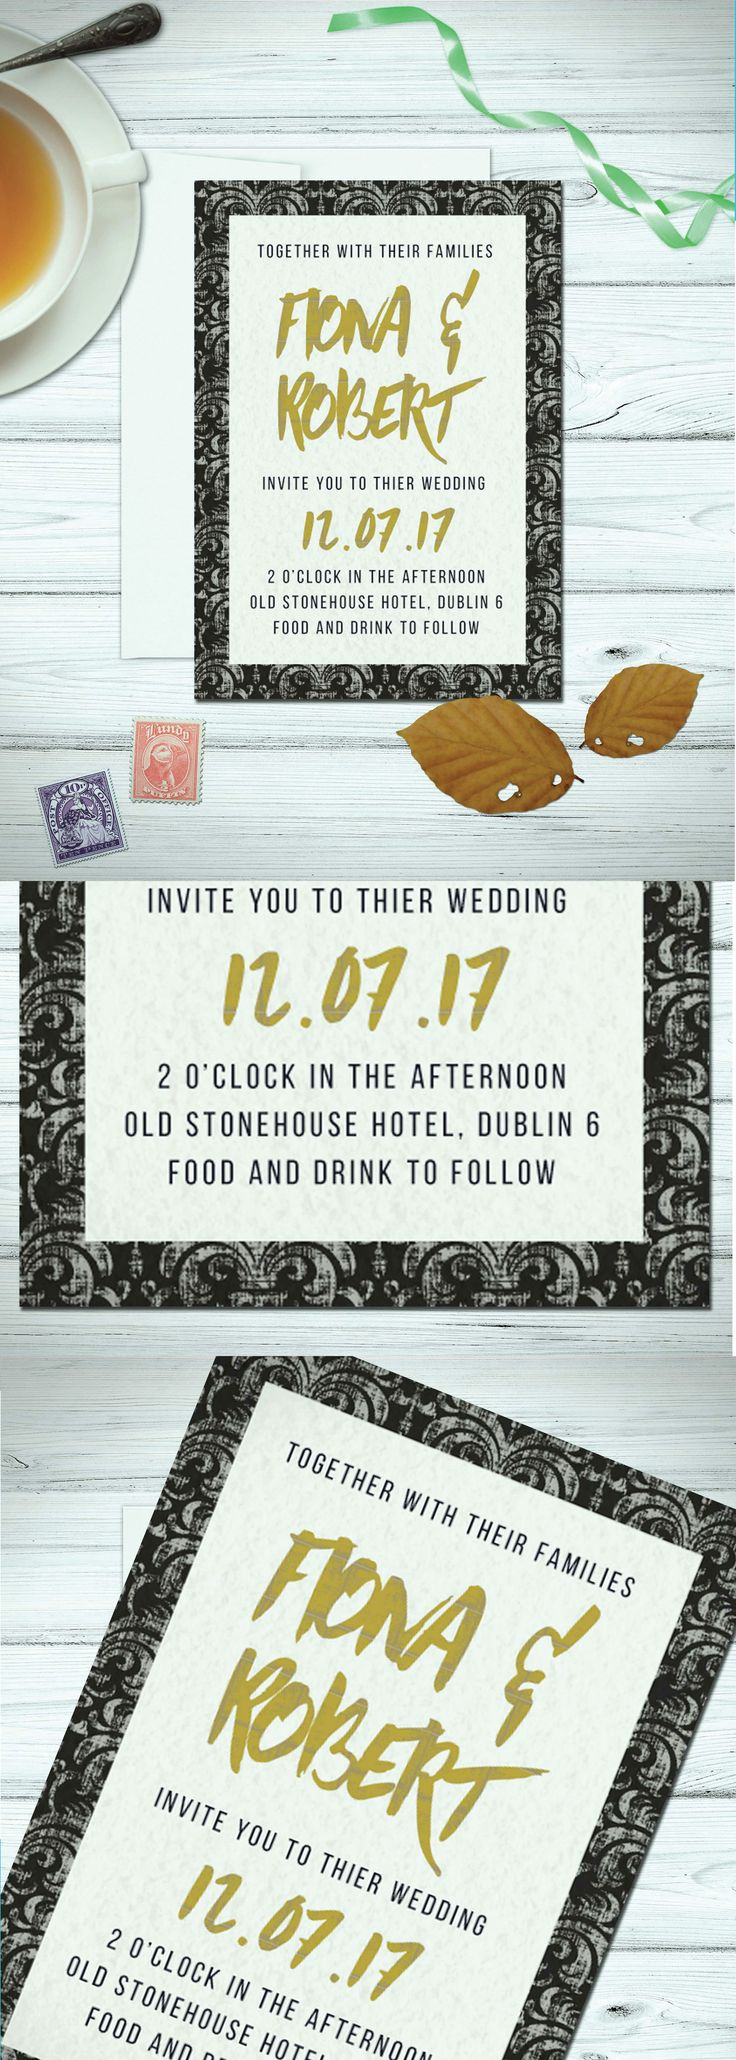 43 best Our Wedding Invitations images on Pinterest | Alternative ...